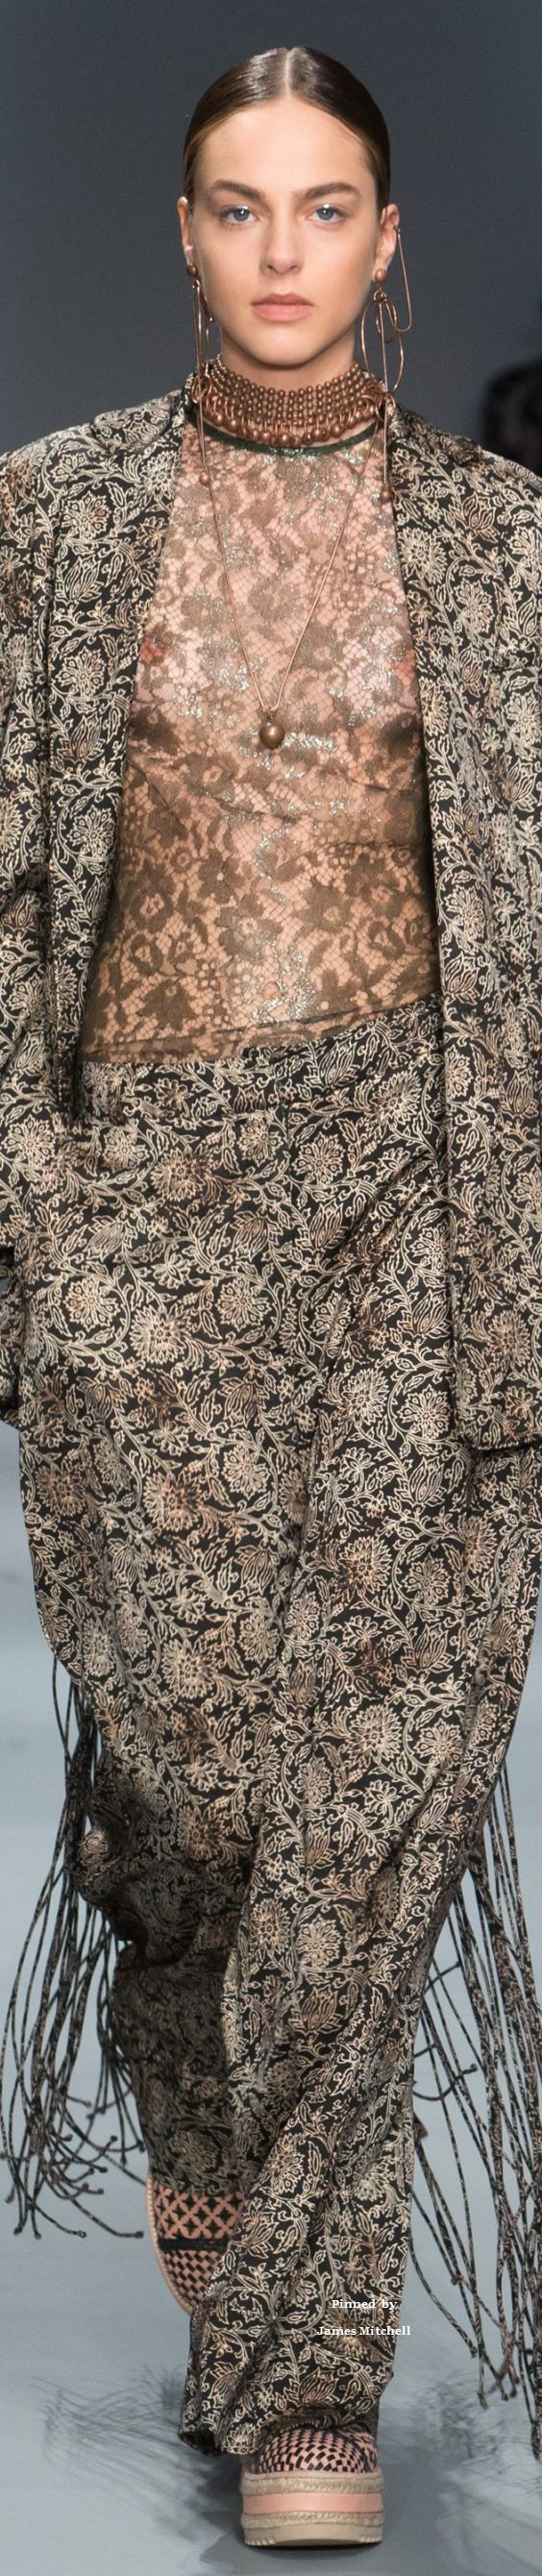 Zimmermann Collection fall 2016 Ready-to-Wear